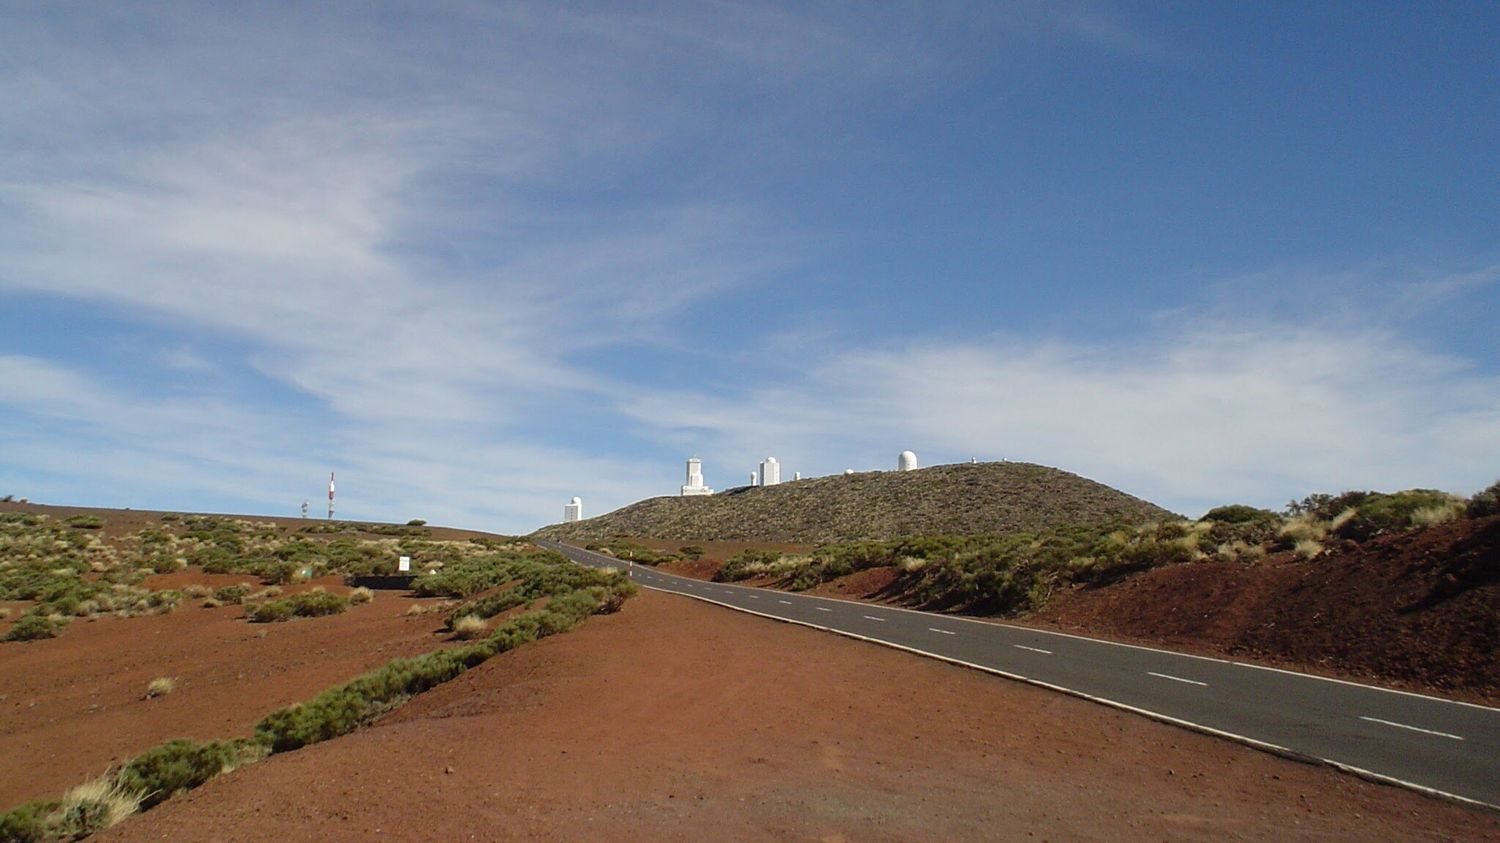 Observatorio Del Teide 2400m, Canary Islands Tenerife Observatory Mountains Sky Sky And Clouds Clouds Landscape Landscape_photography Nature Nature Photography ohne Filter 2006